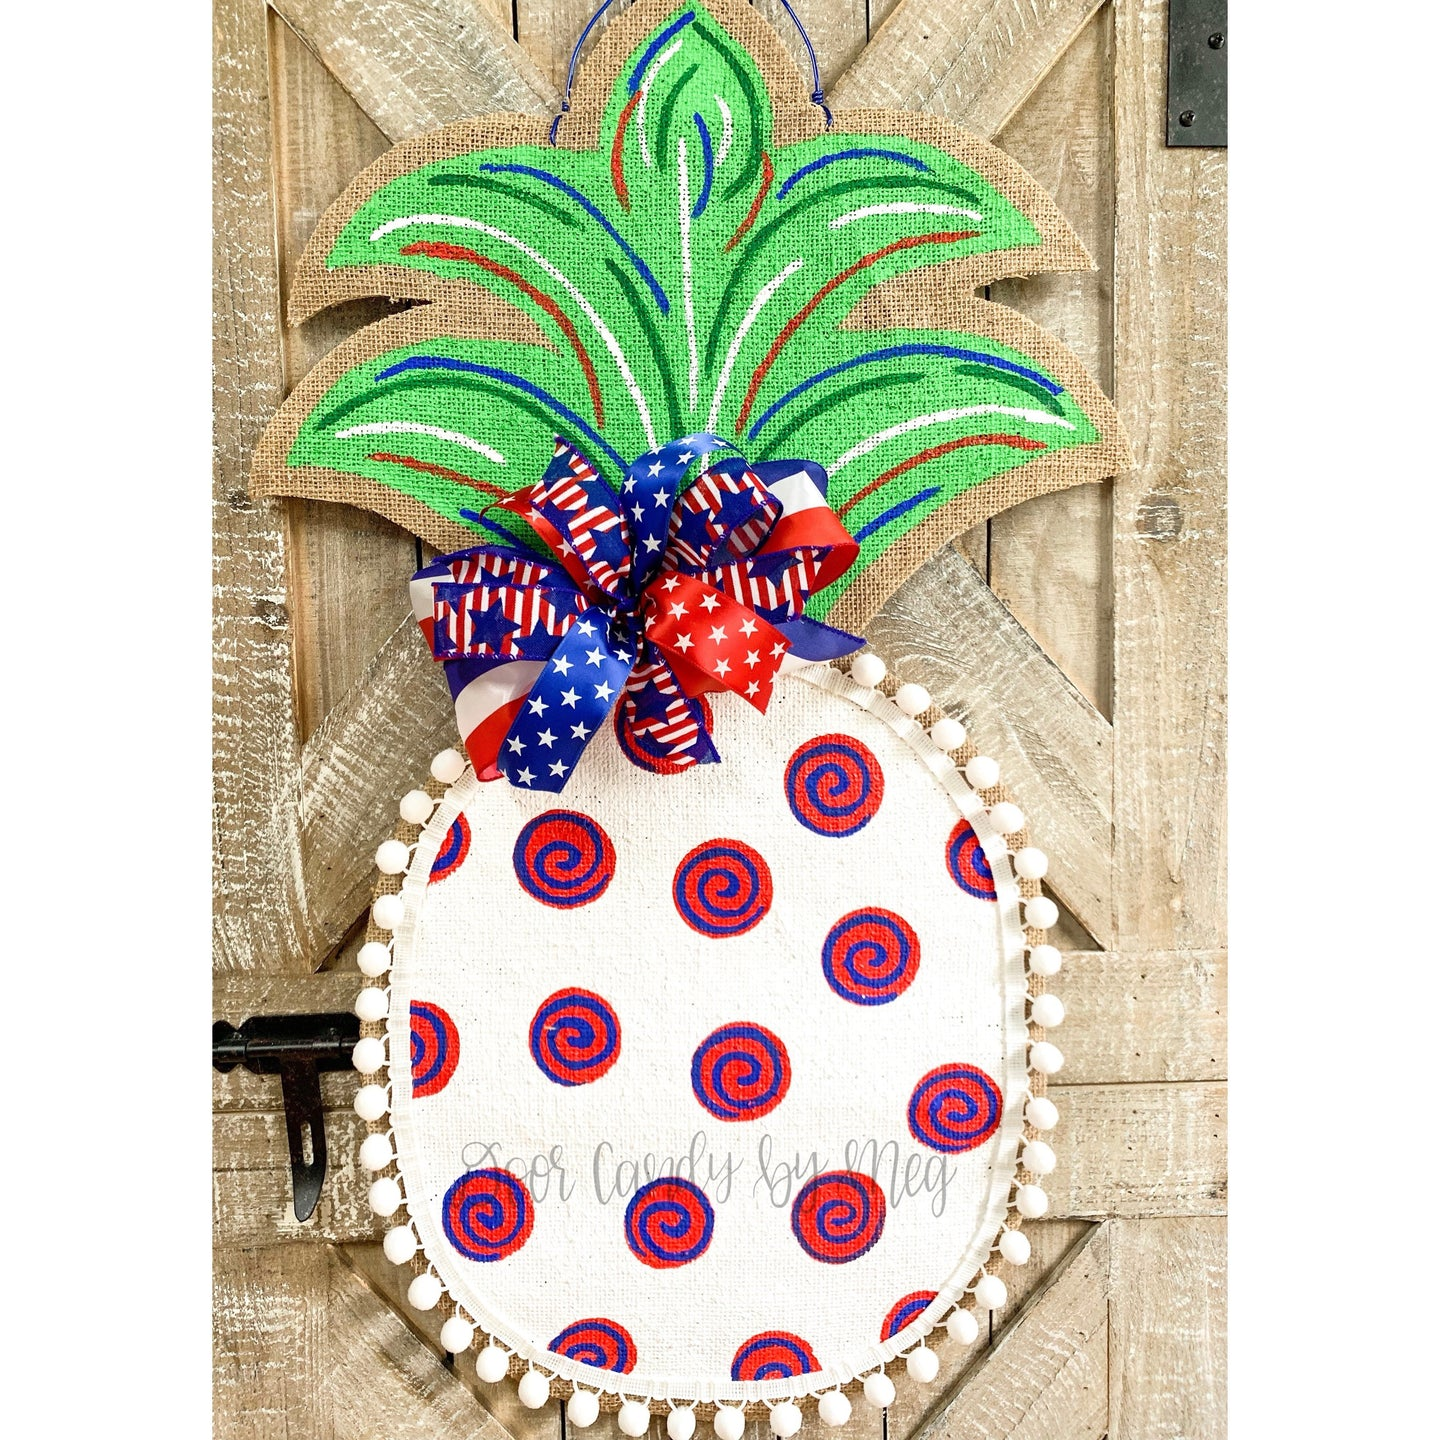 Burlap Pineapple Door Hanger - Large Patriotic Fourth of July Swirl